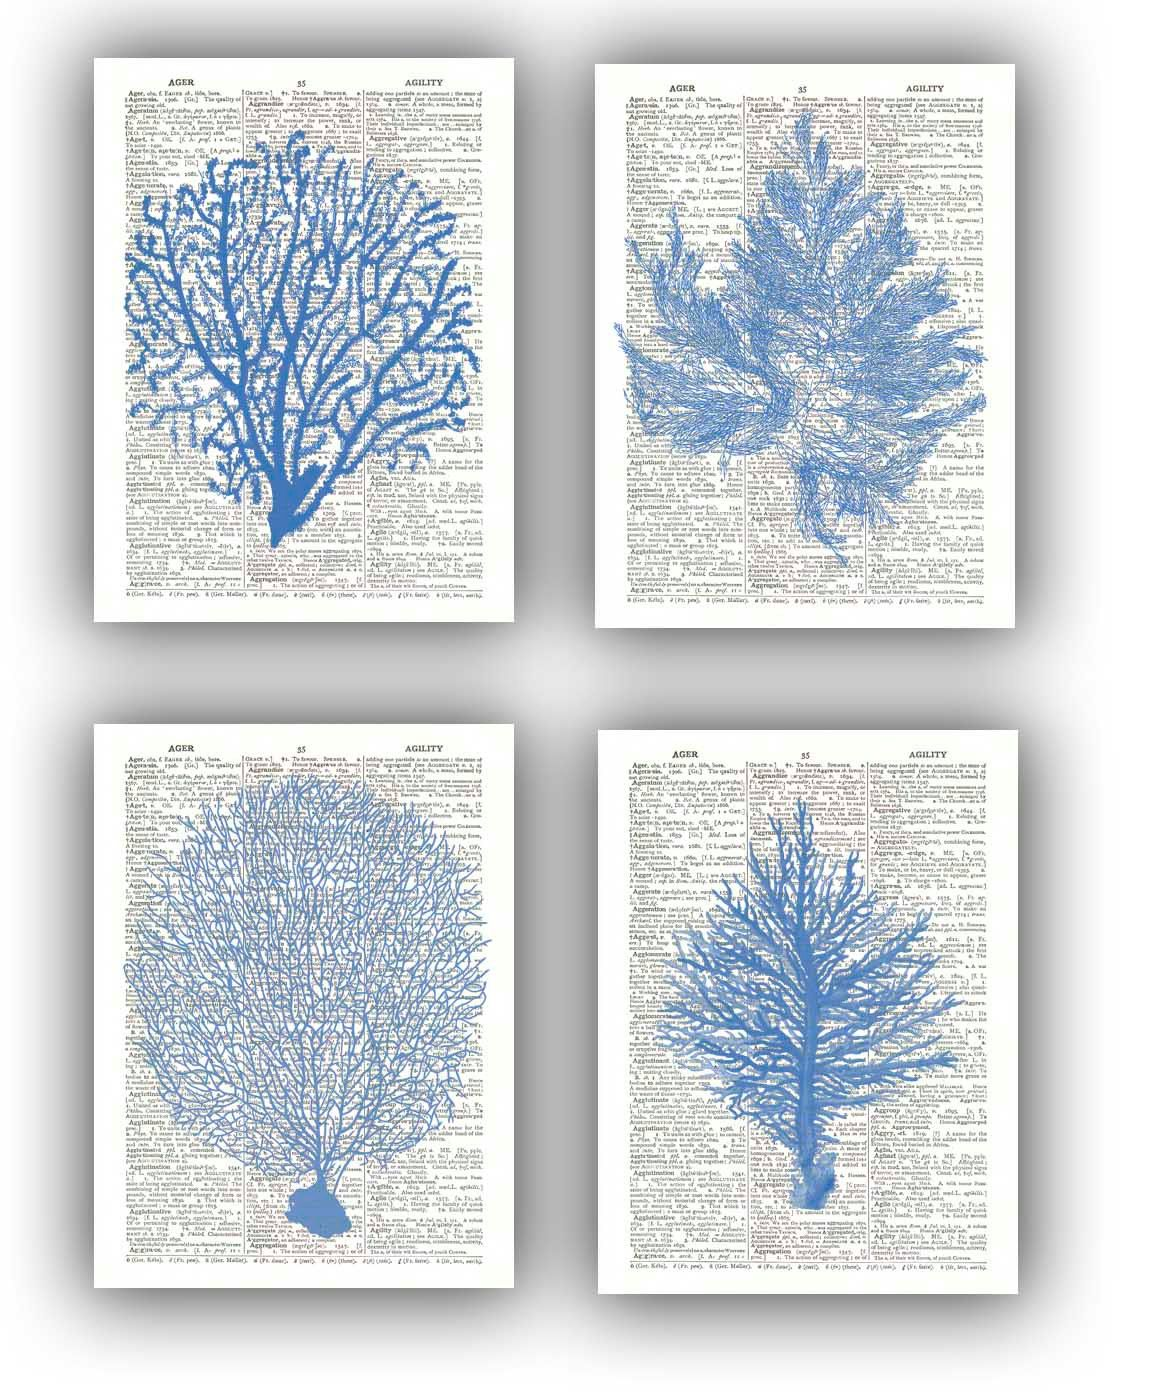 Bathroom wall art sea - 4 Seafan Ocean Blue Prints Sea Fan Sea Grass Coral Nautical Dictionary Prints Bathroom Wall Decor Beach Decor Cottage Wall Hangings